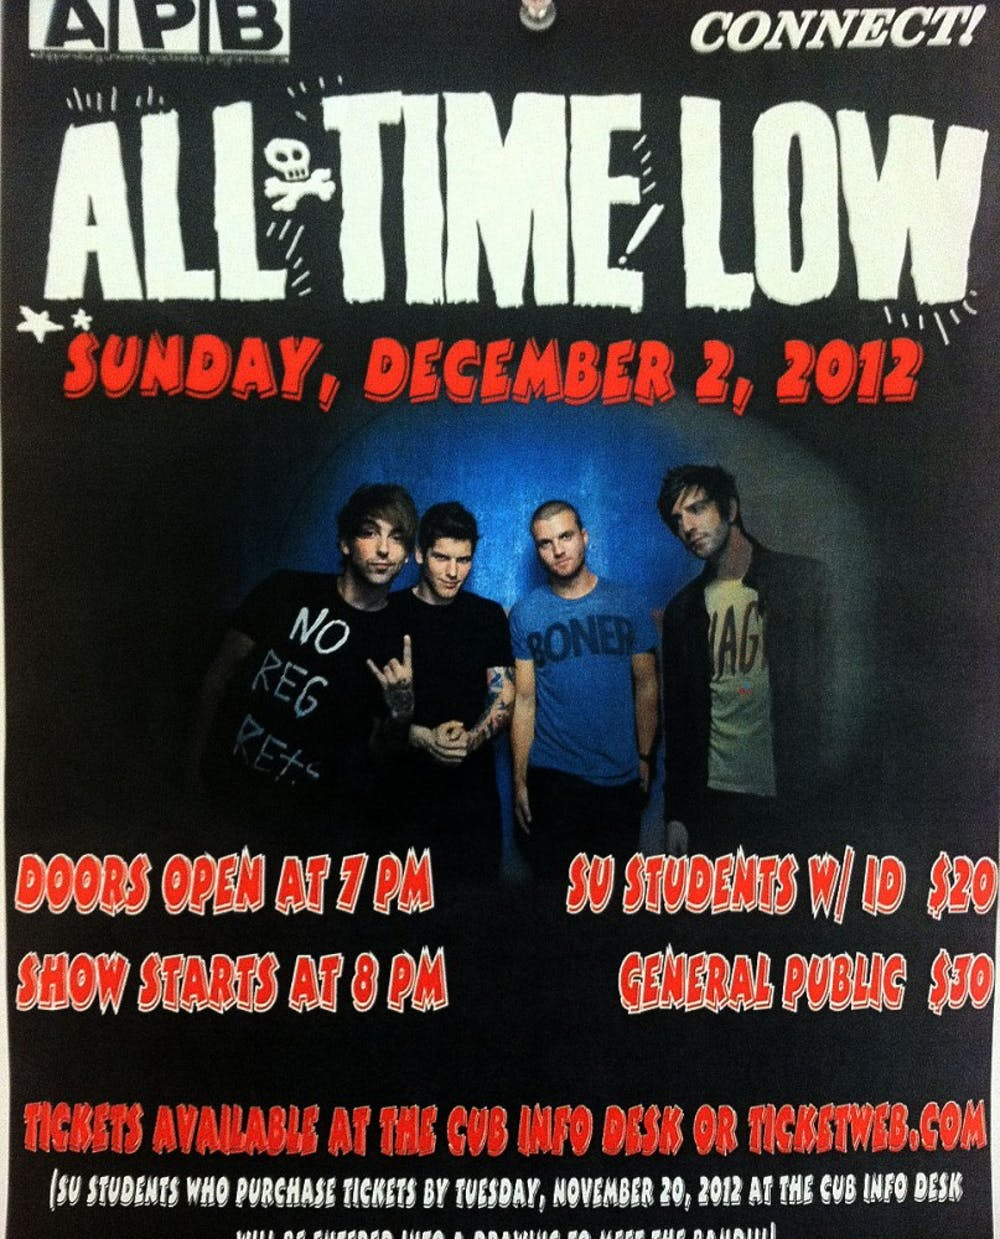 All Time Low is expected to give an 'all time high' performance at SU